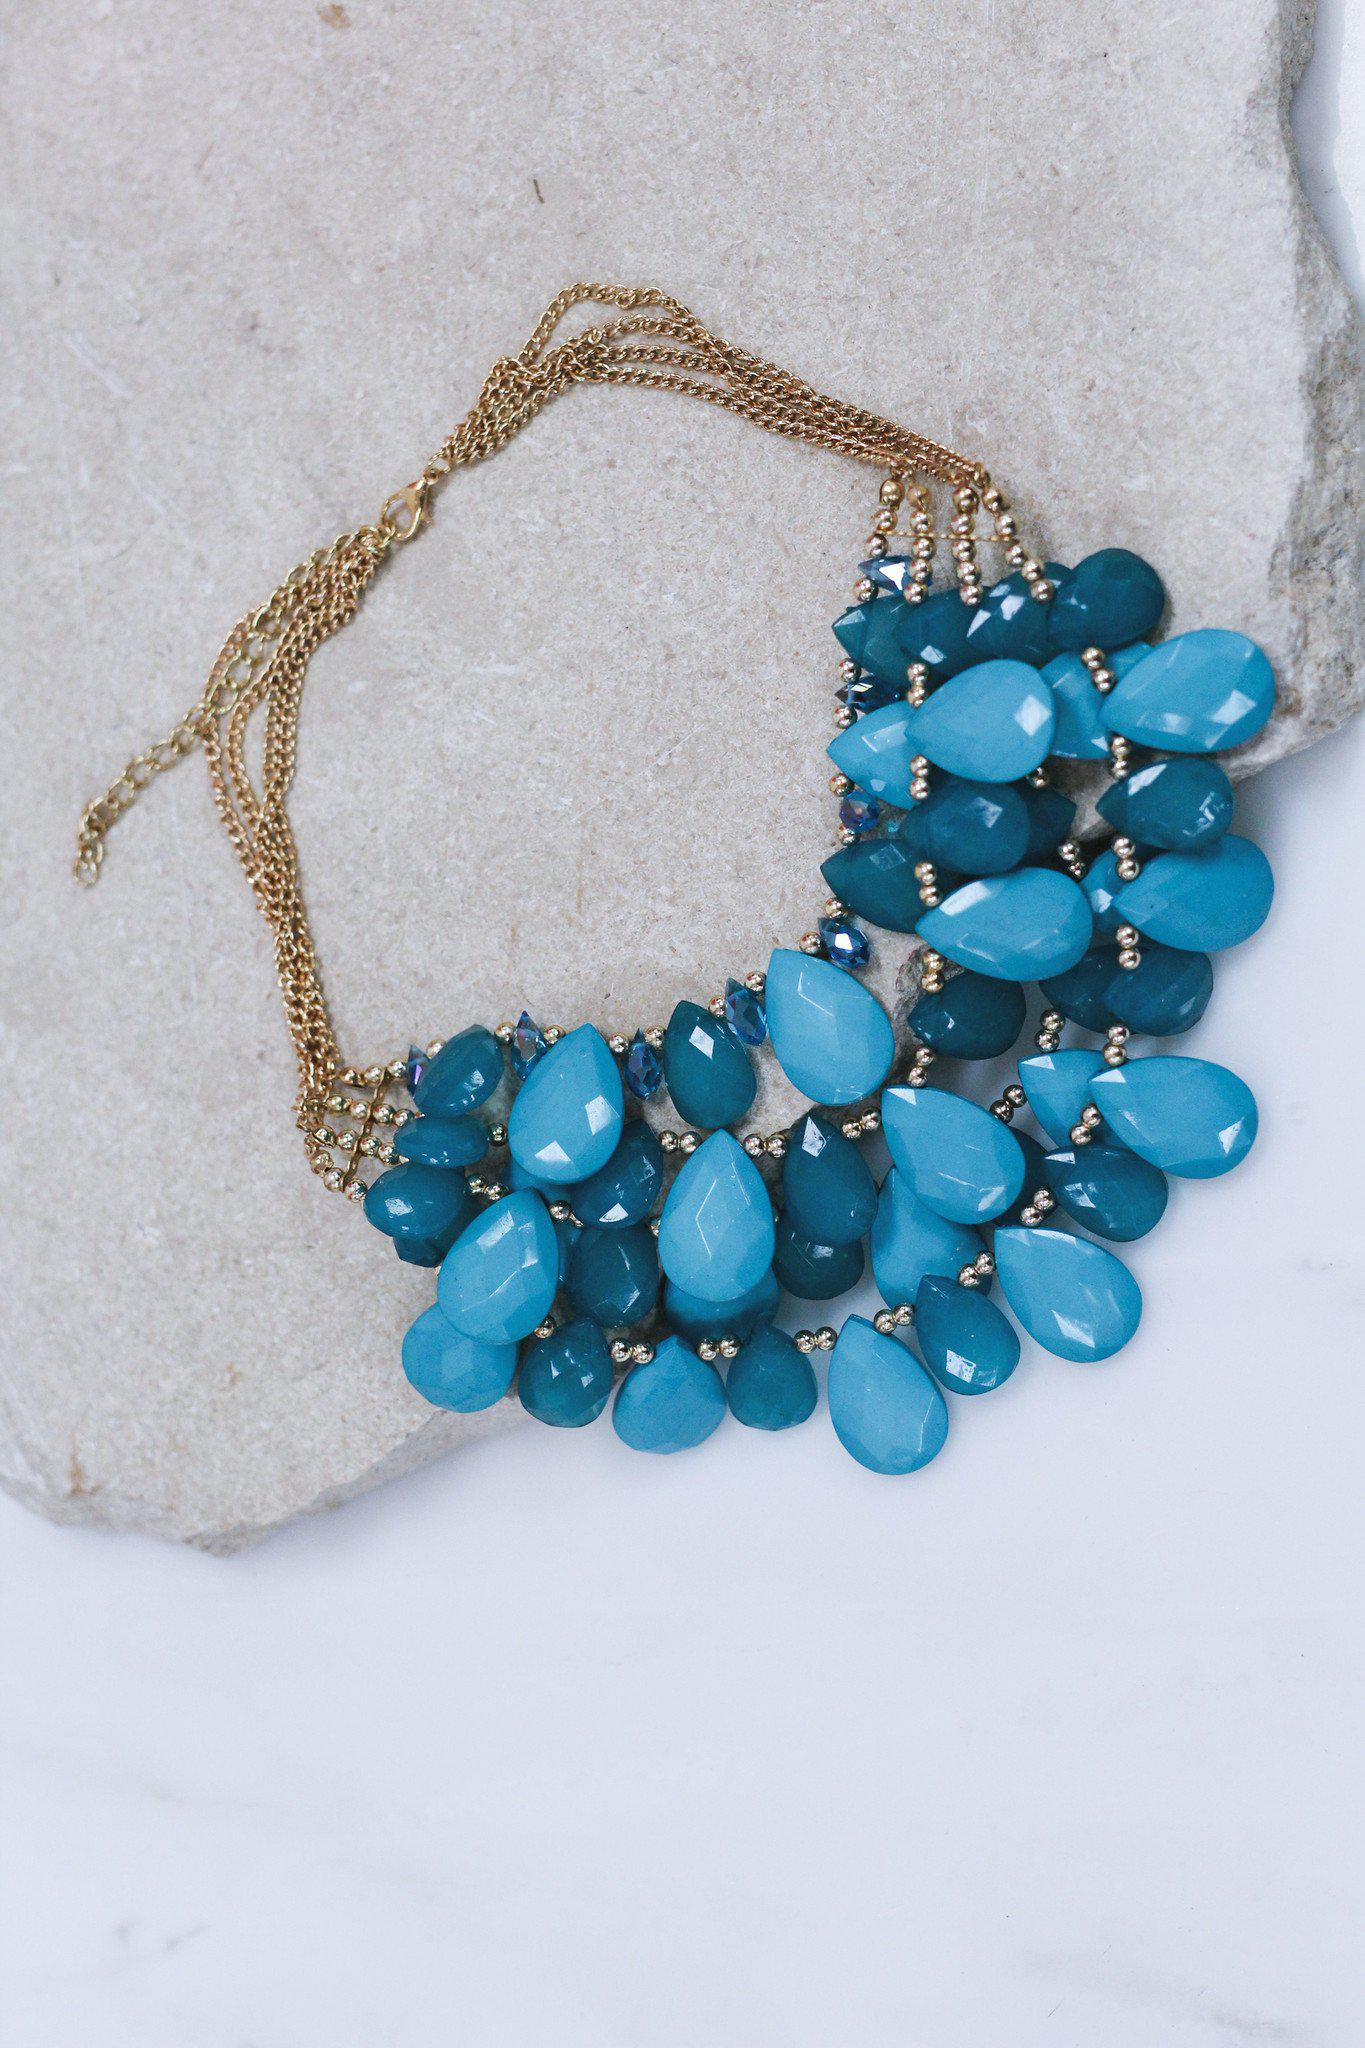 Four Layered Teal Stone Necklace